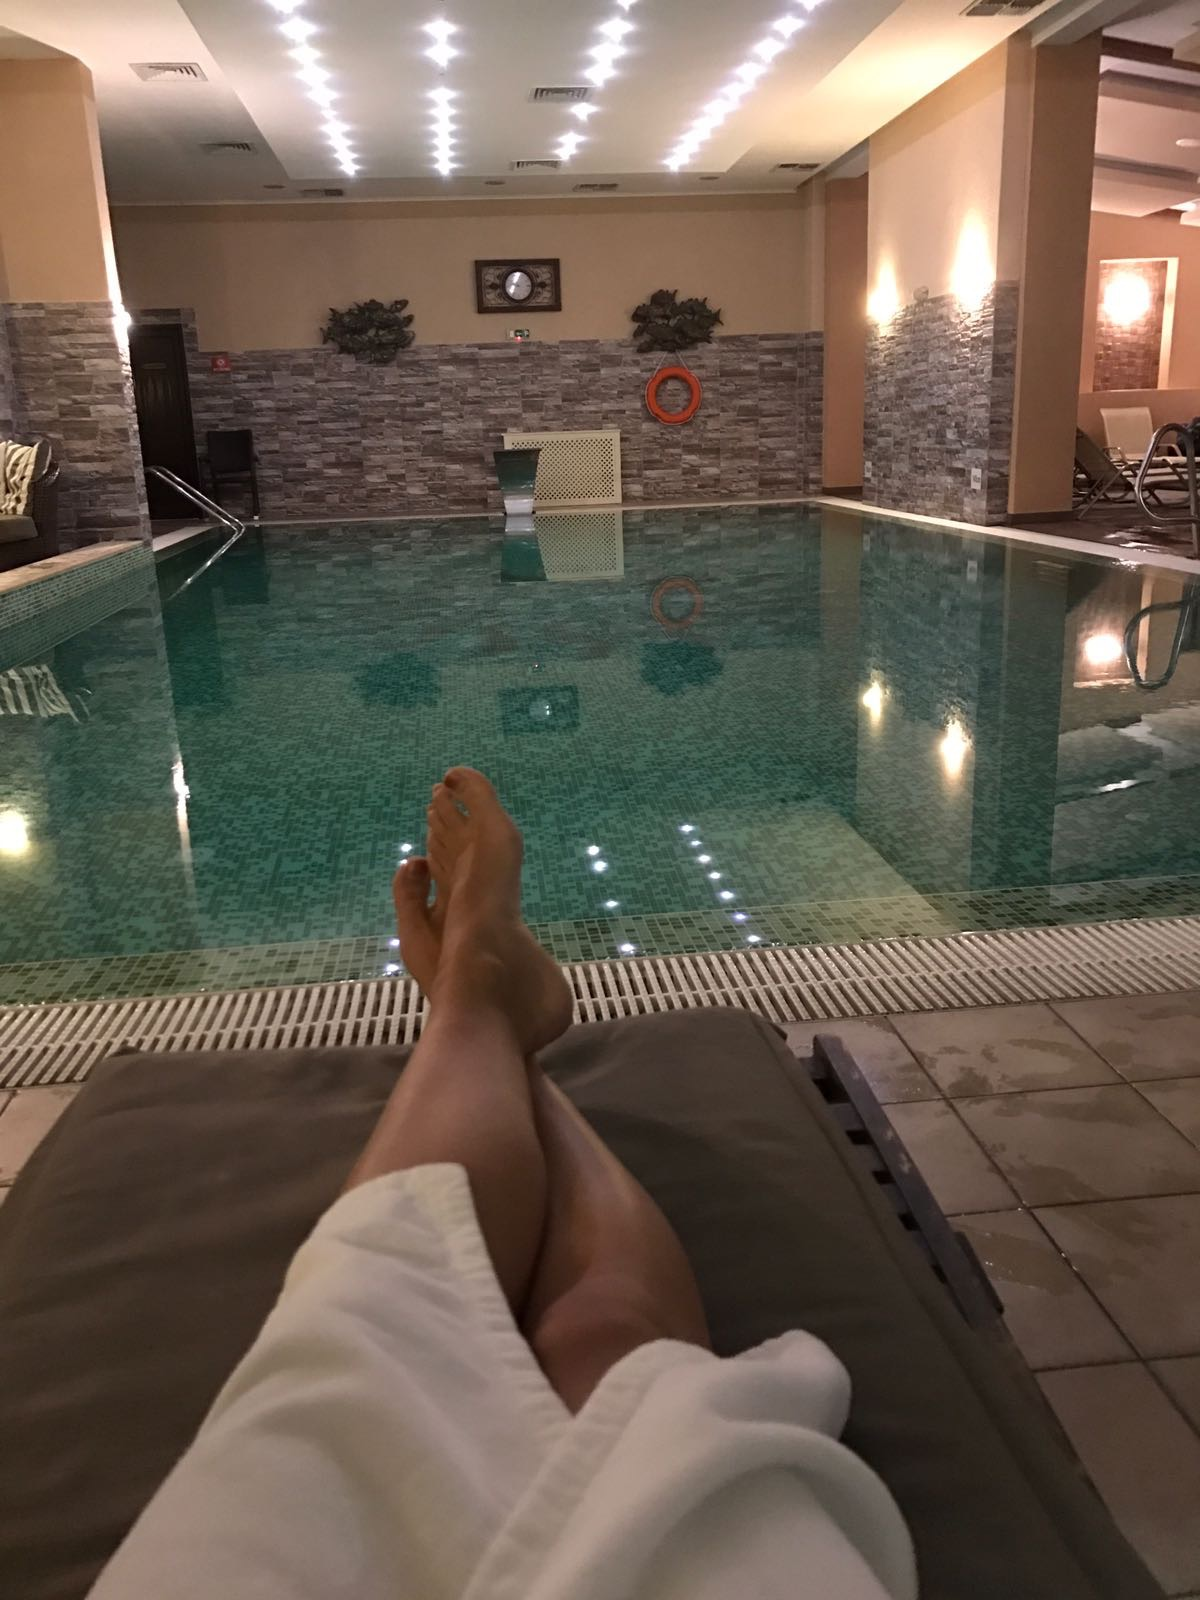 The Premier Mountain Resort hotel spa and pool - my kind of apres ski